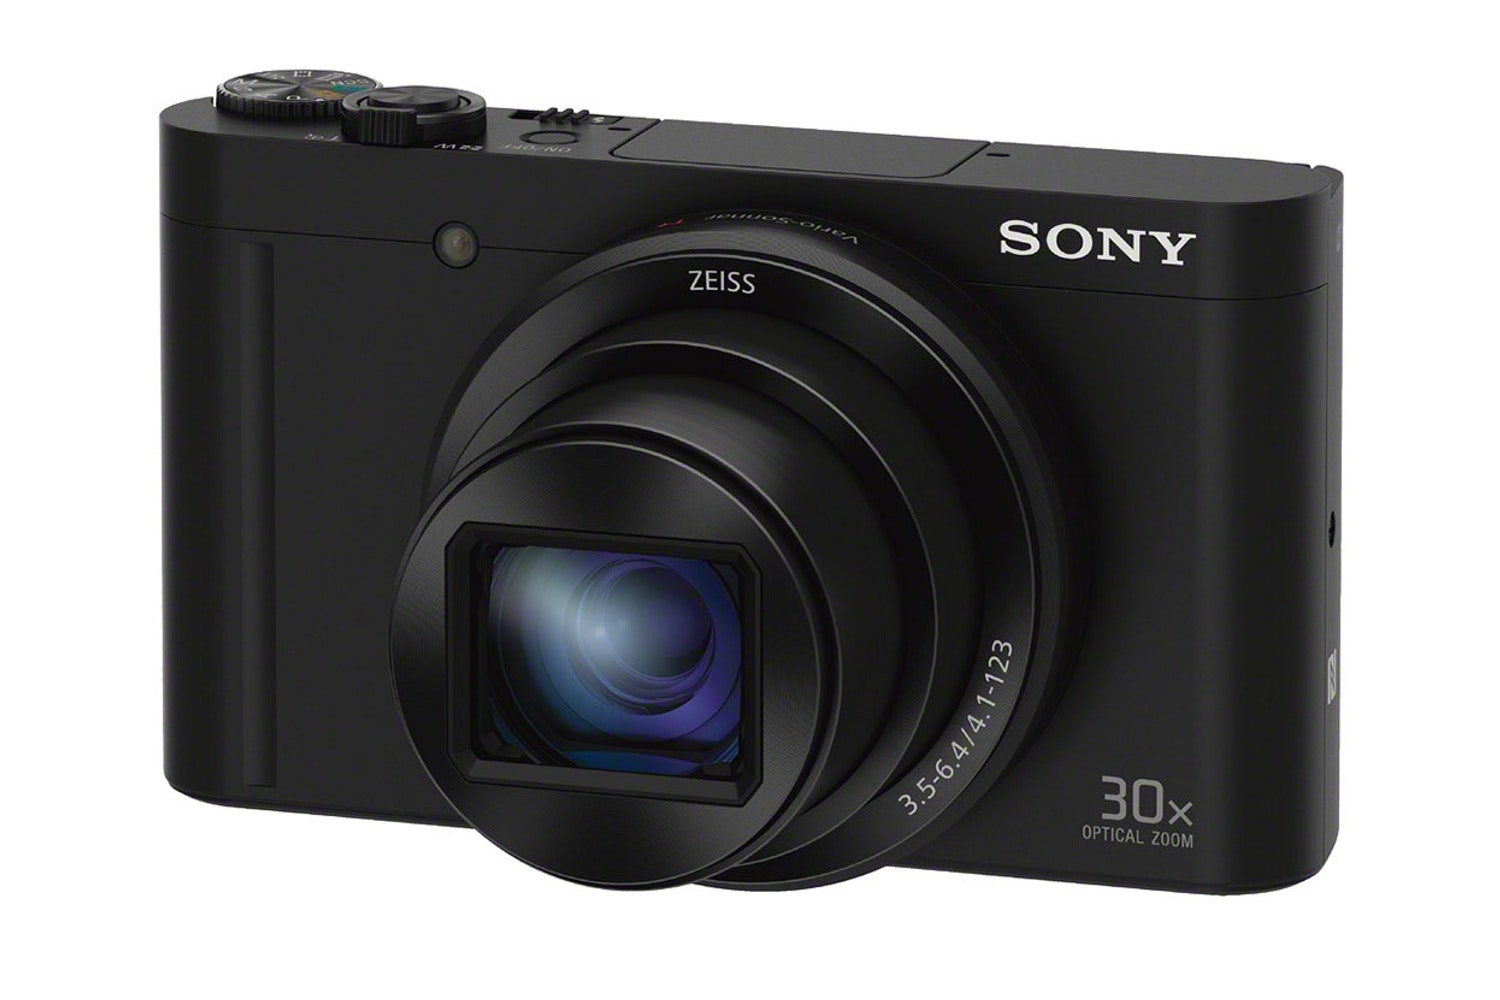 Sony WX500 Digital Camera | Black